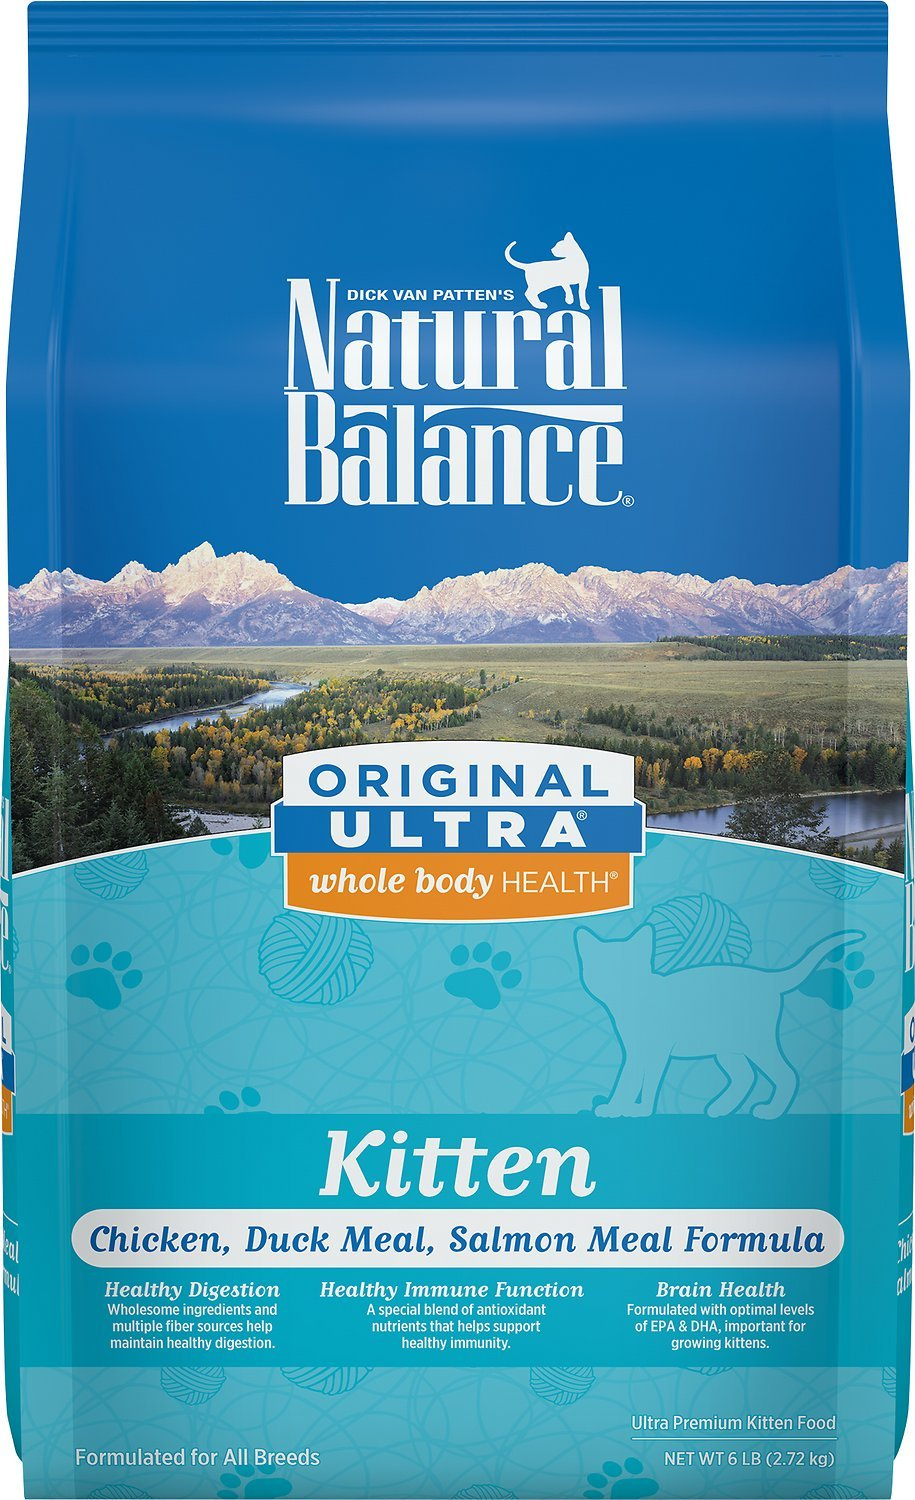 Natural Balance Original Ultra Whole Body Health Kitten